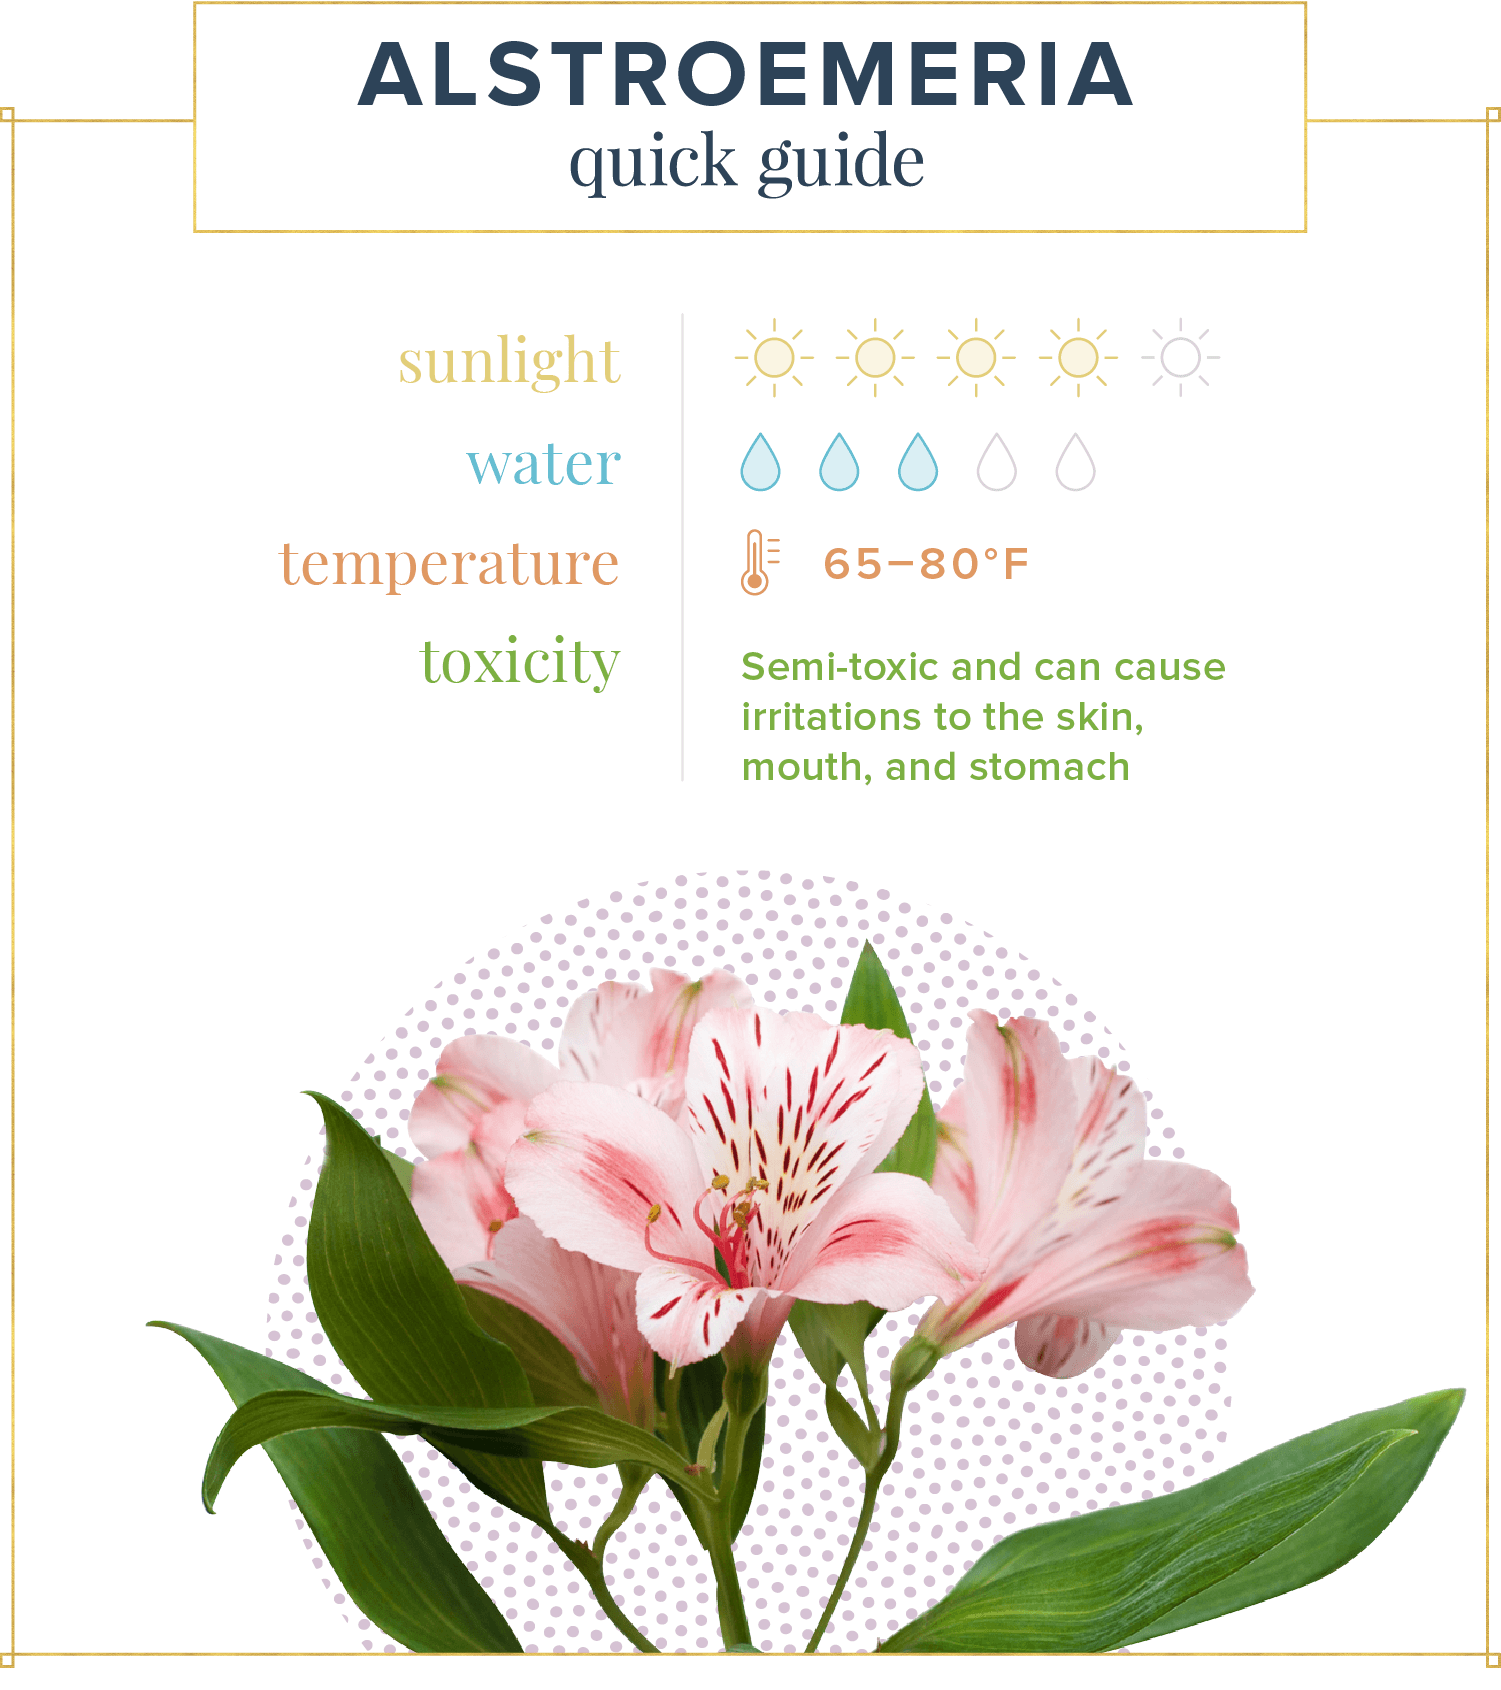 altstroemeria care guide with pink flower on a white background